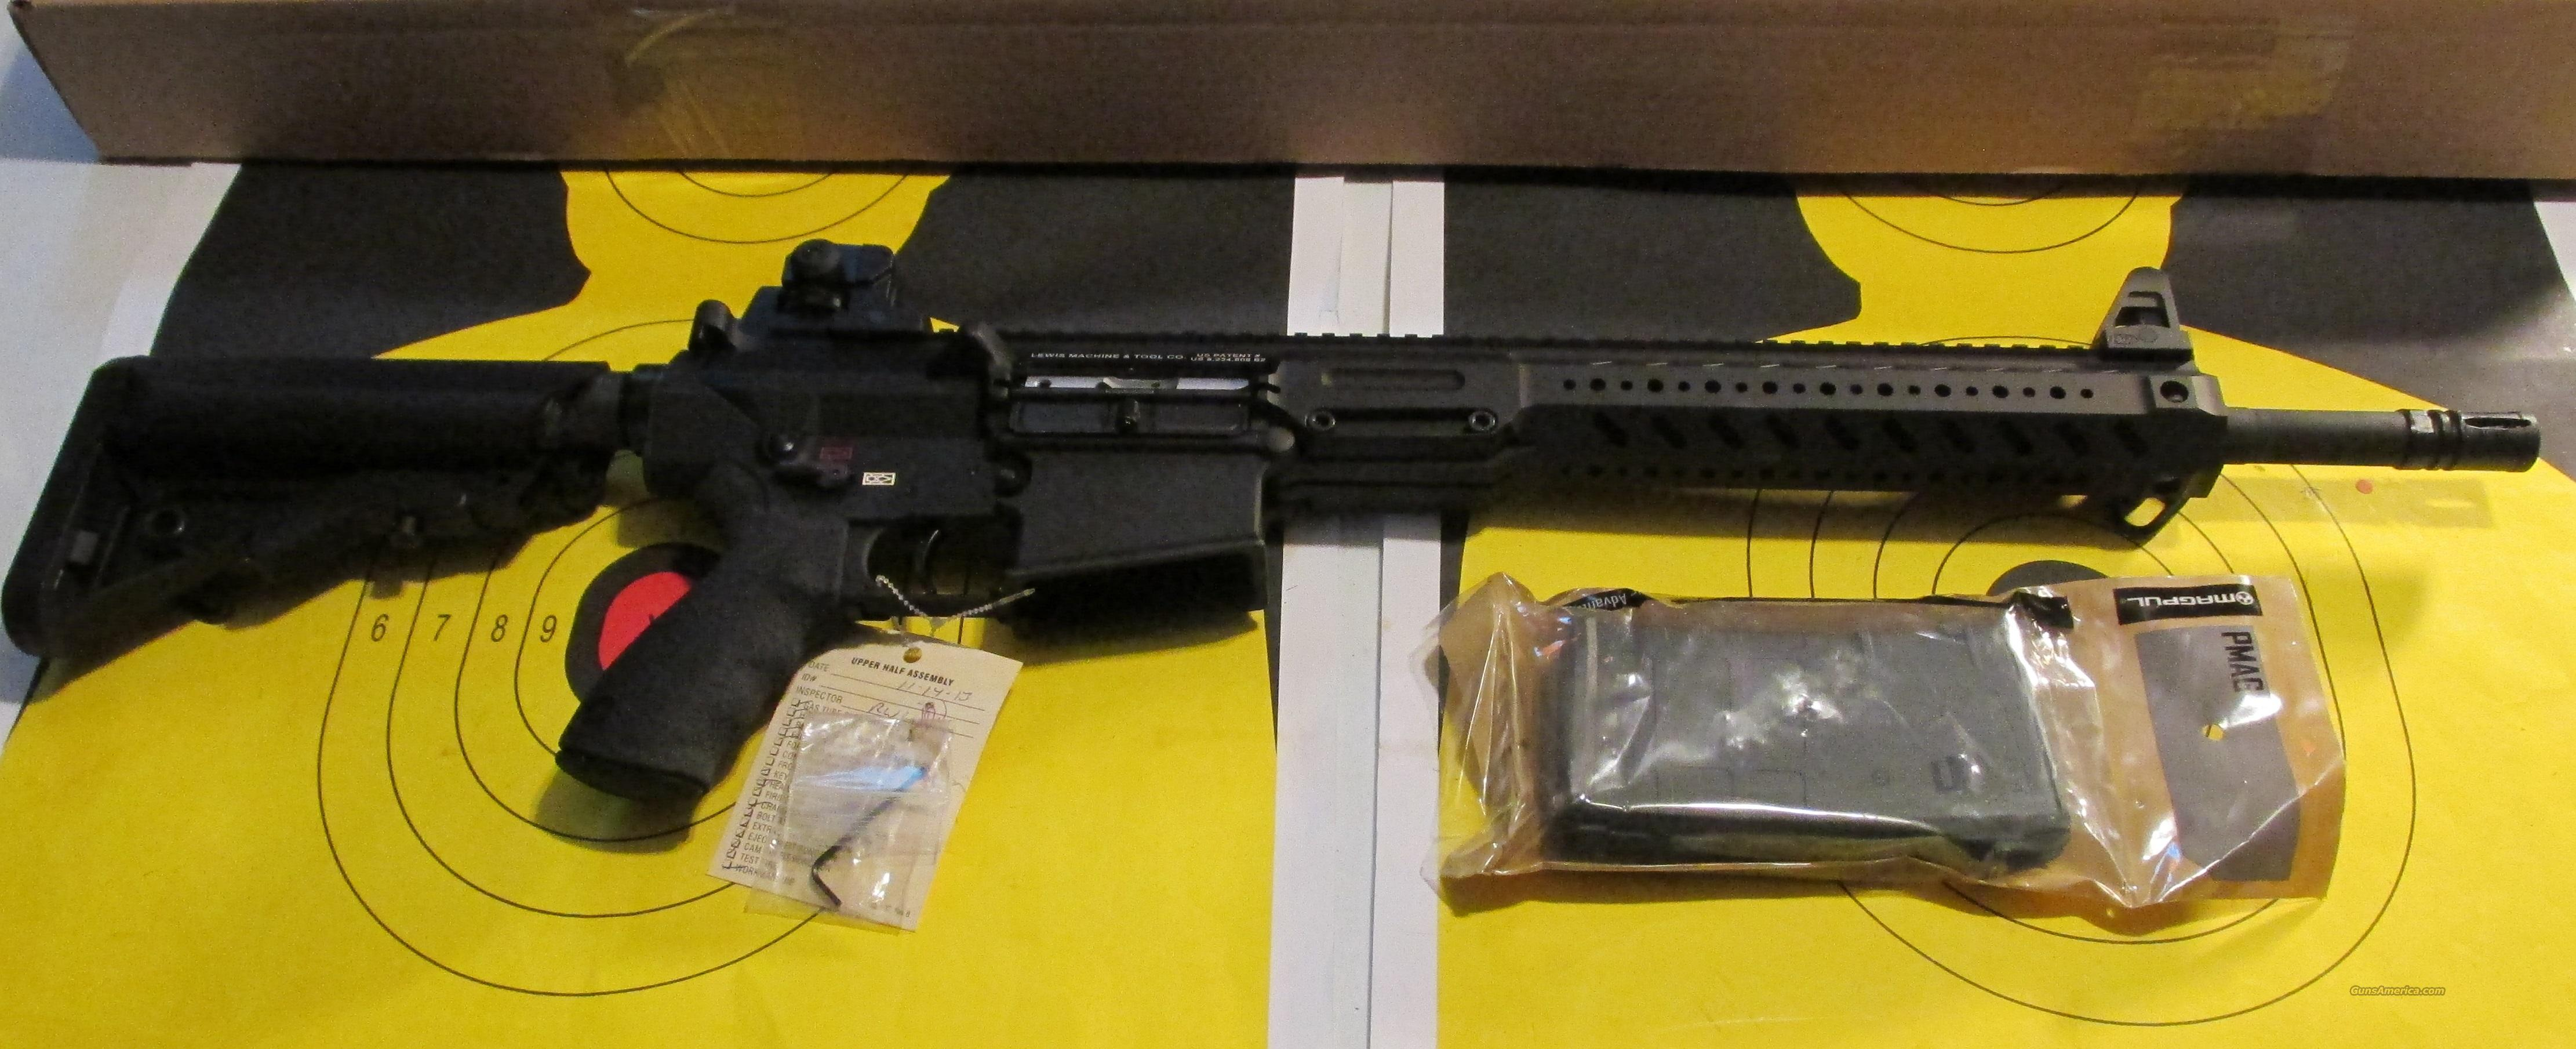 "LMT LM8MWS 16"" SLICK UPPER 308  Guns > Rifles > AR-15 Rifles - Small Manufacturers > Complete Rifle"